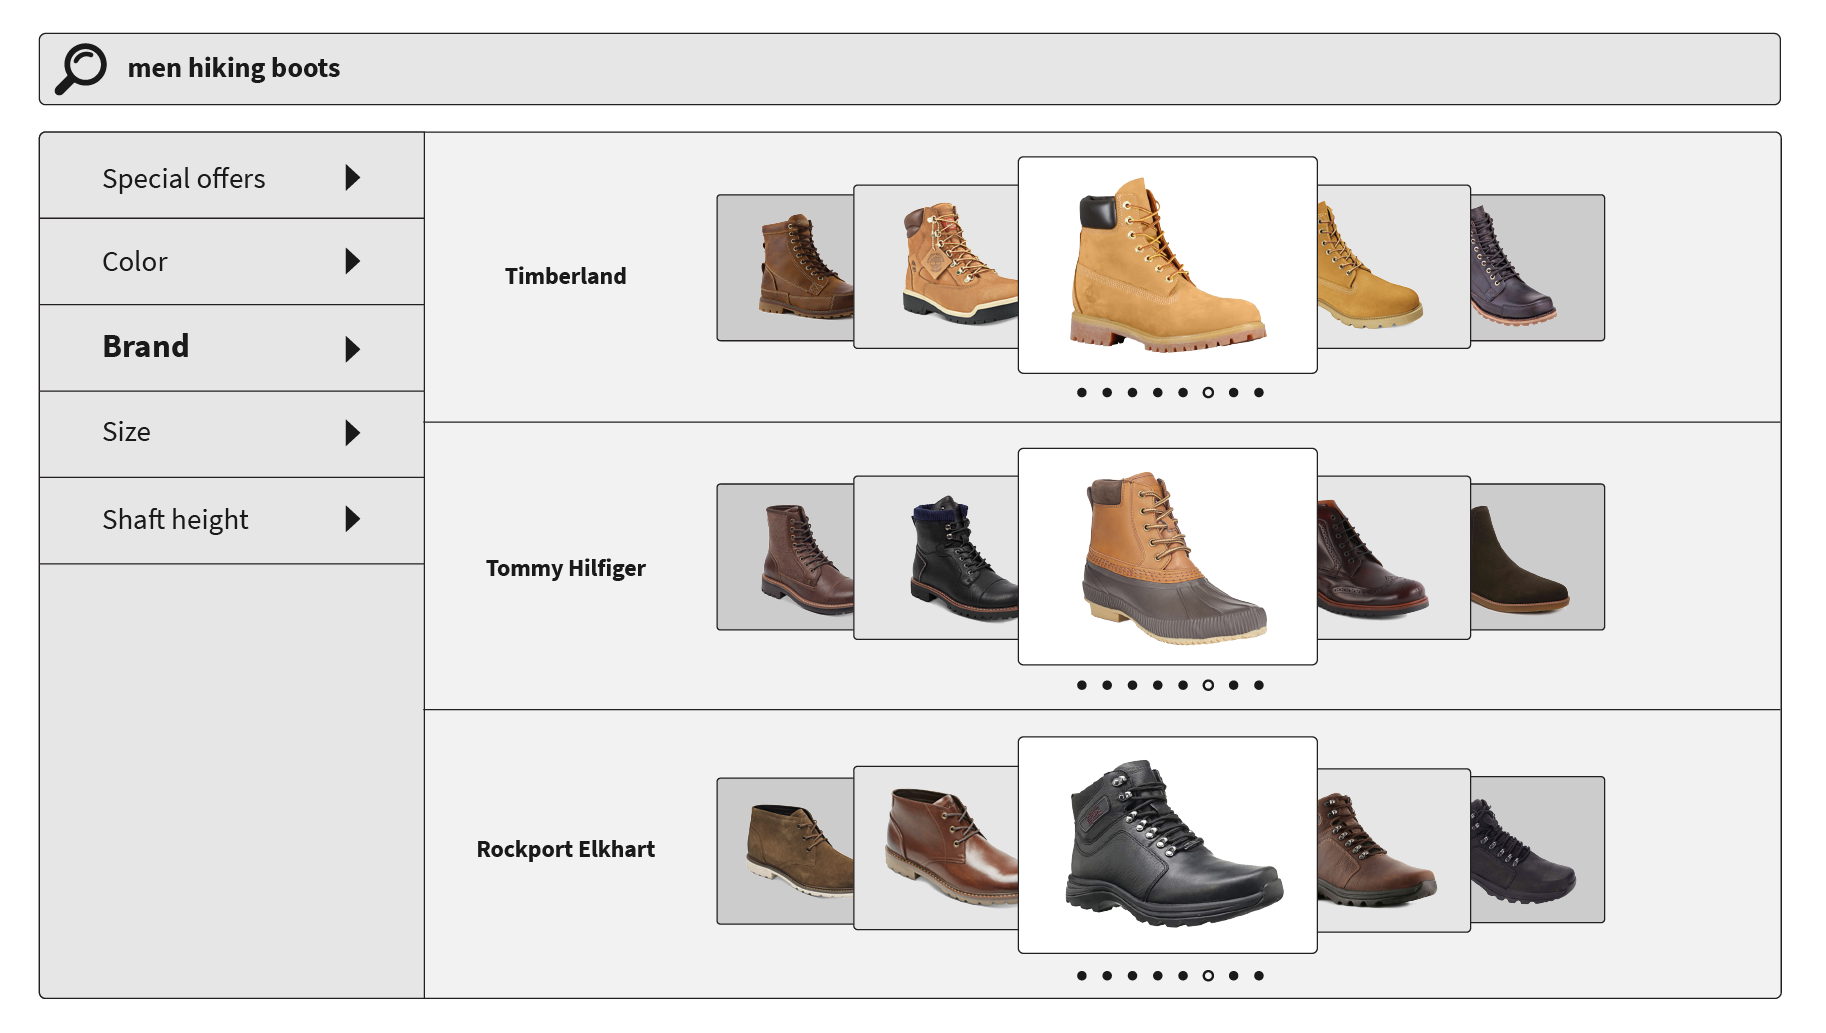 Product curation by brand of men's boots